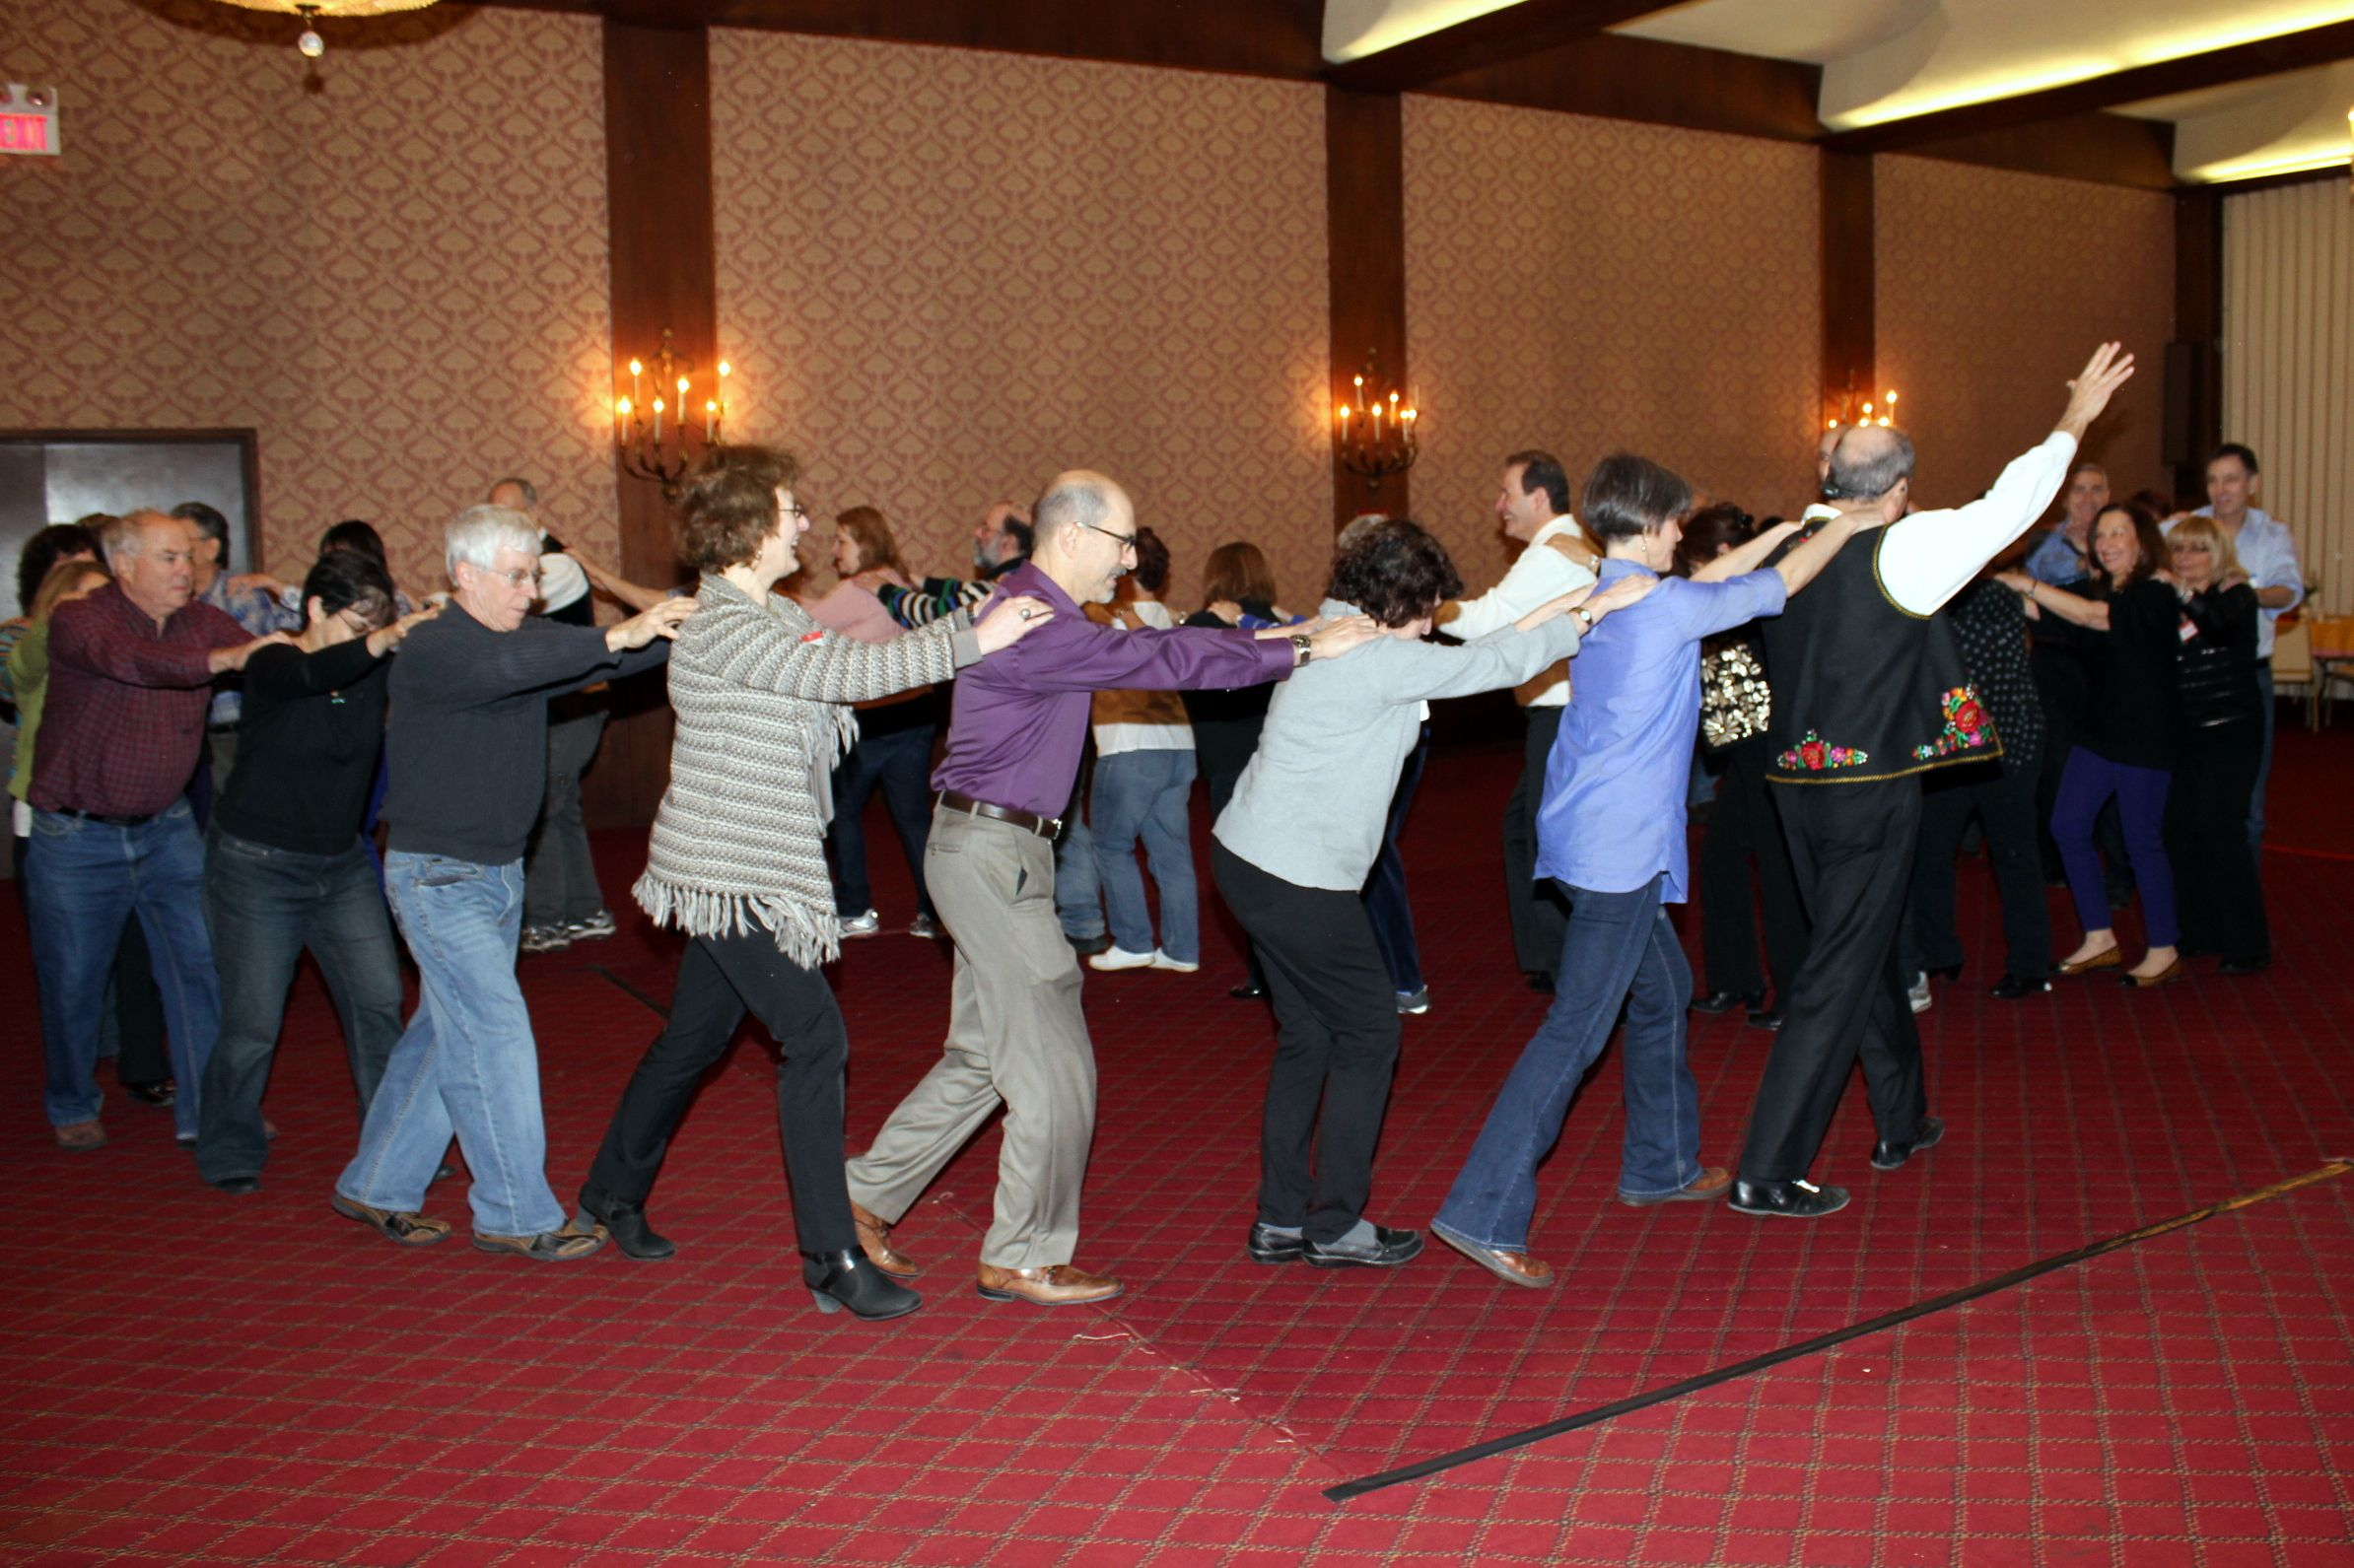 jewish singles in fajardo county Lehigh valley jewish singles bucks county (philadelphia), pa, after 5 club -- social club for jewish single adults ages 40's and 50's, bucks county jcc.